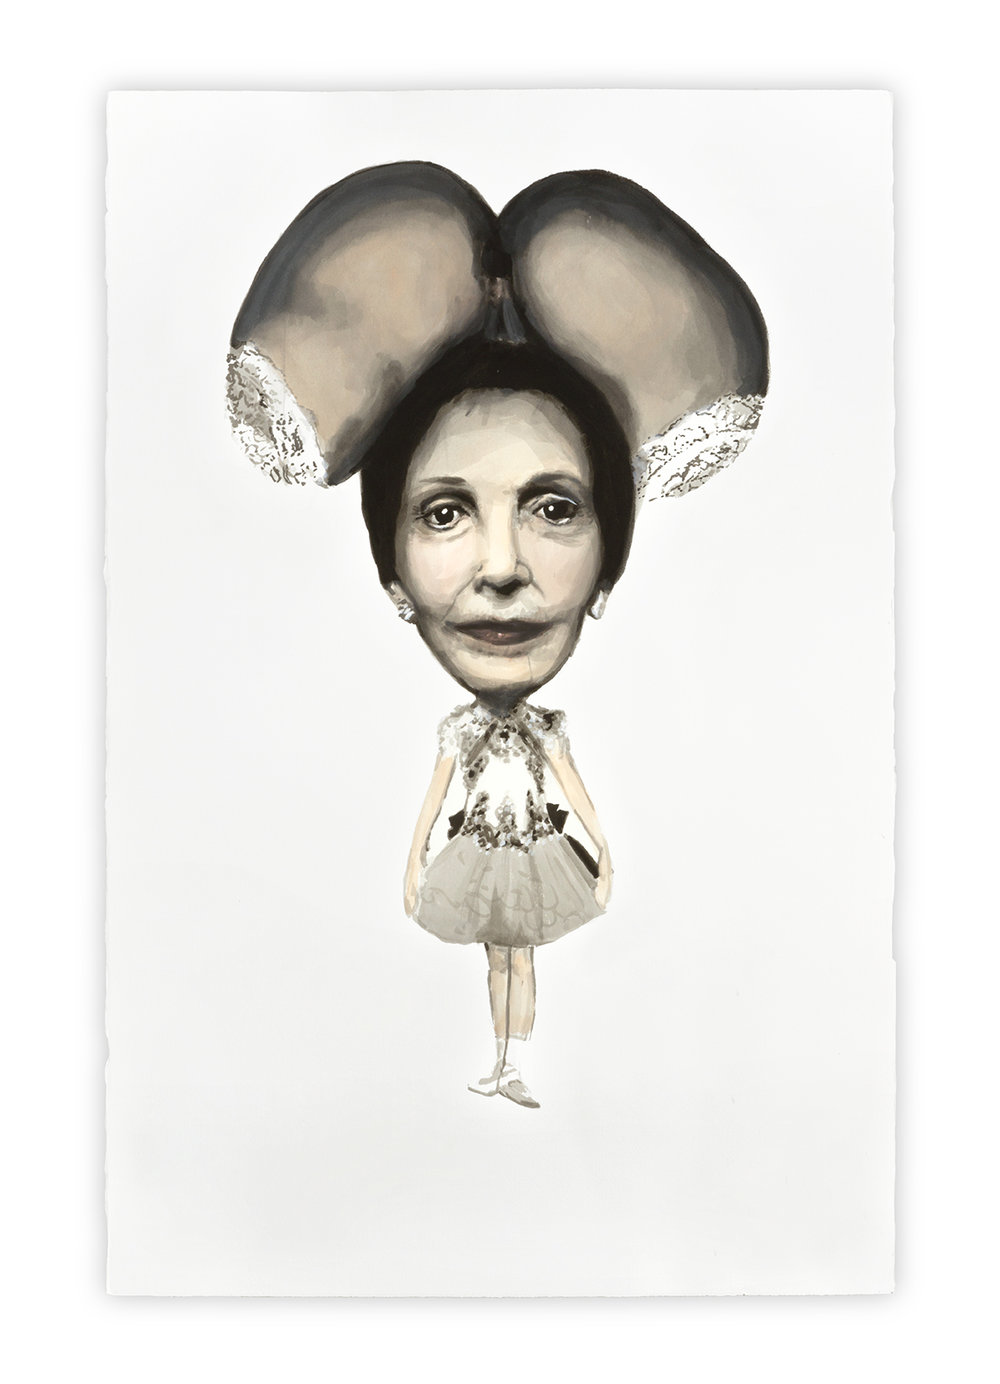 Minnie   Vanessa Lodigiani | Indian Ink and gouache on Arches paper | 102x66 cm | New York 2010